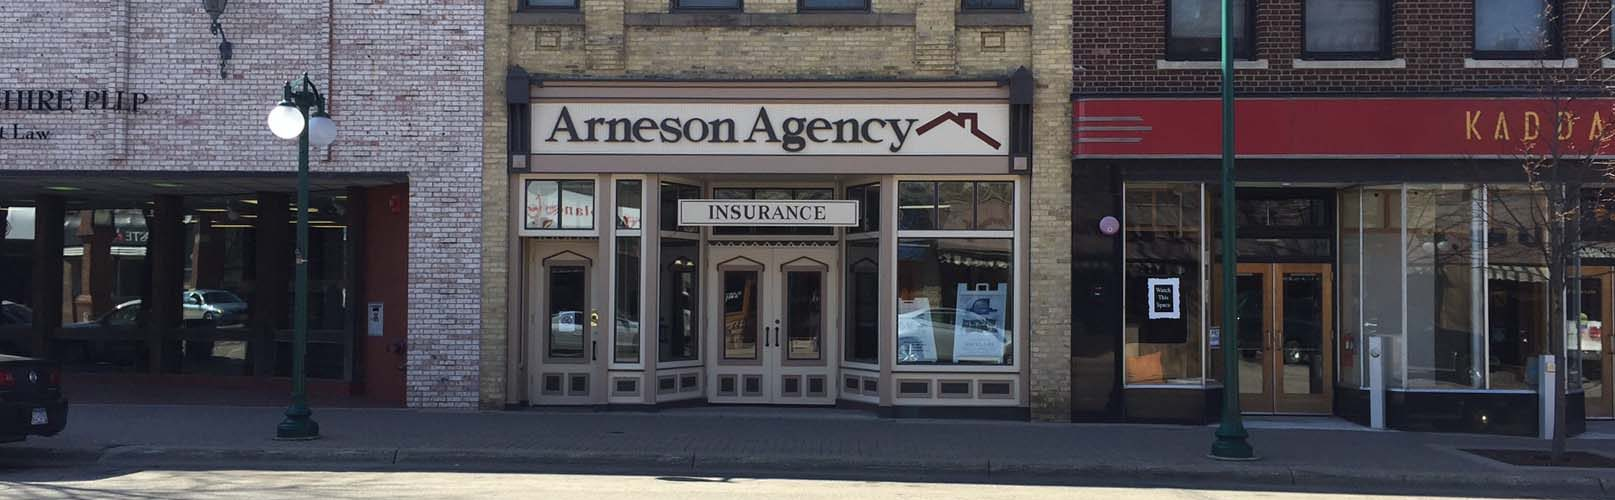 Arneson-Agency-Insurance-Fergus-MOD3